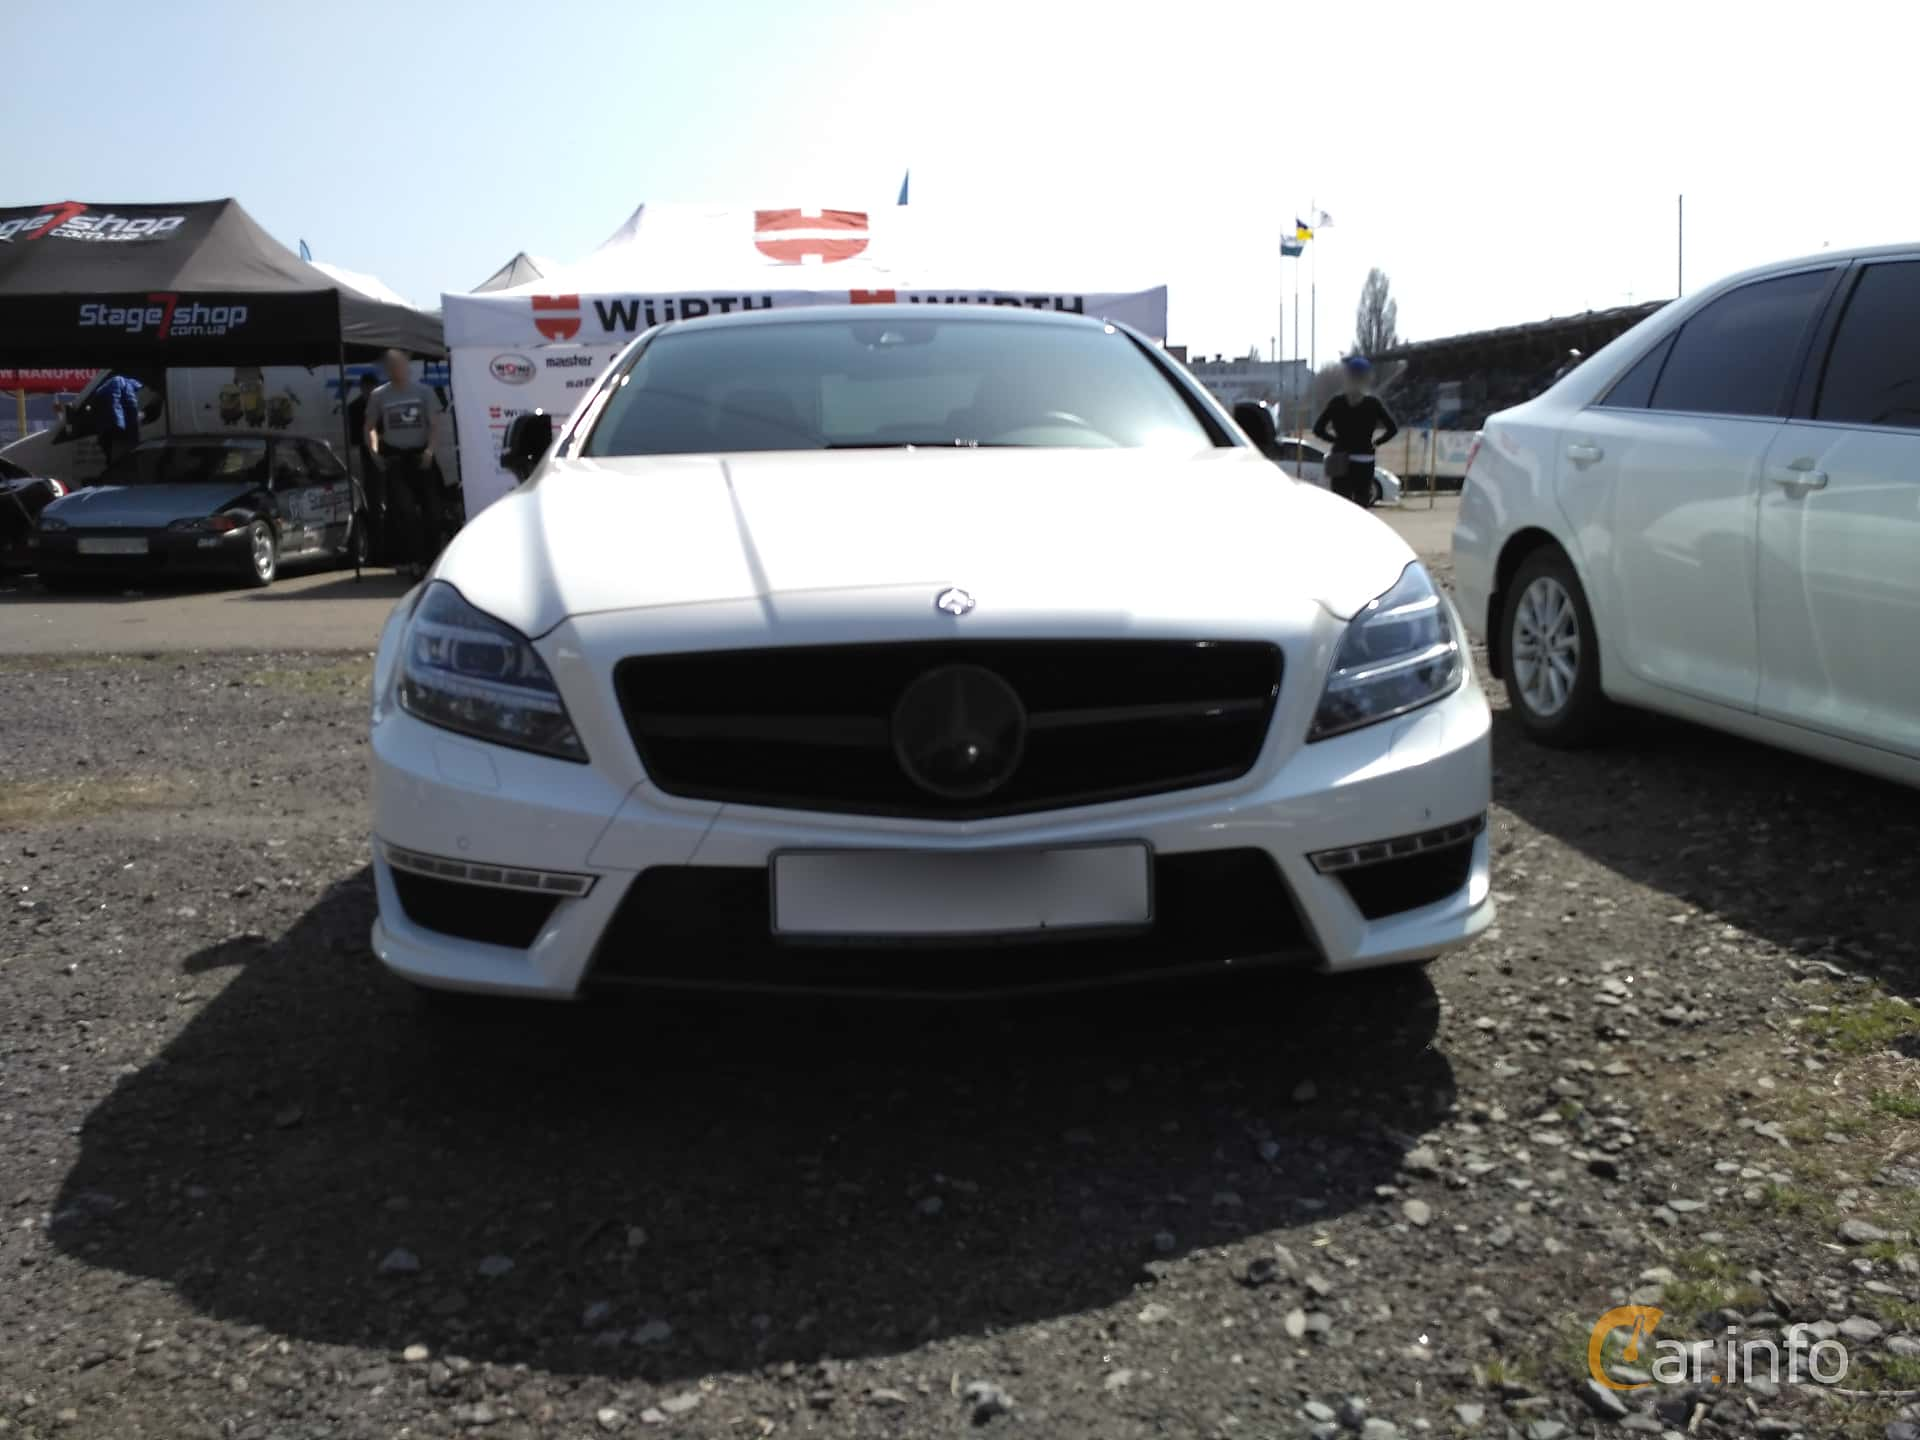 Mercedes-Benz CLS 63 AMG S 4MATIC  AMG Speedshift MCT, 585hk, 2013 at Ltava Time Attack 1st Stage